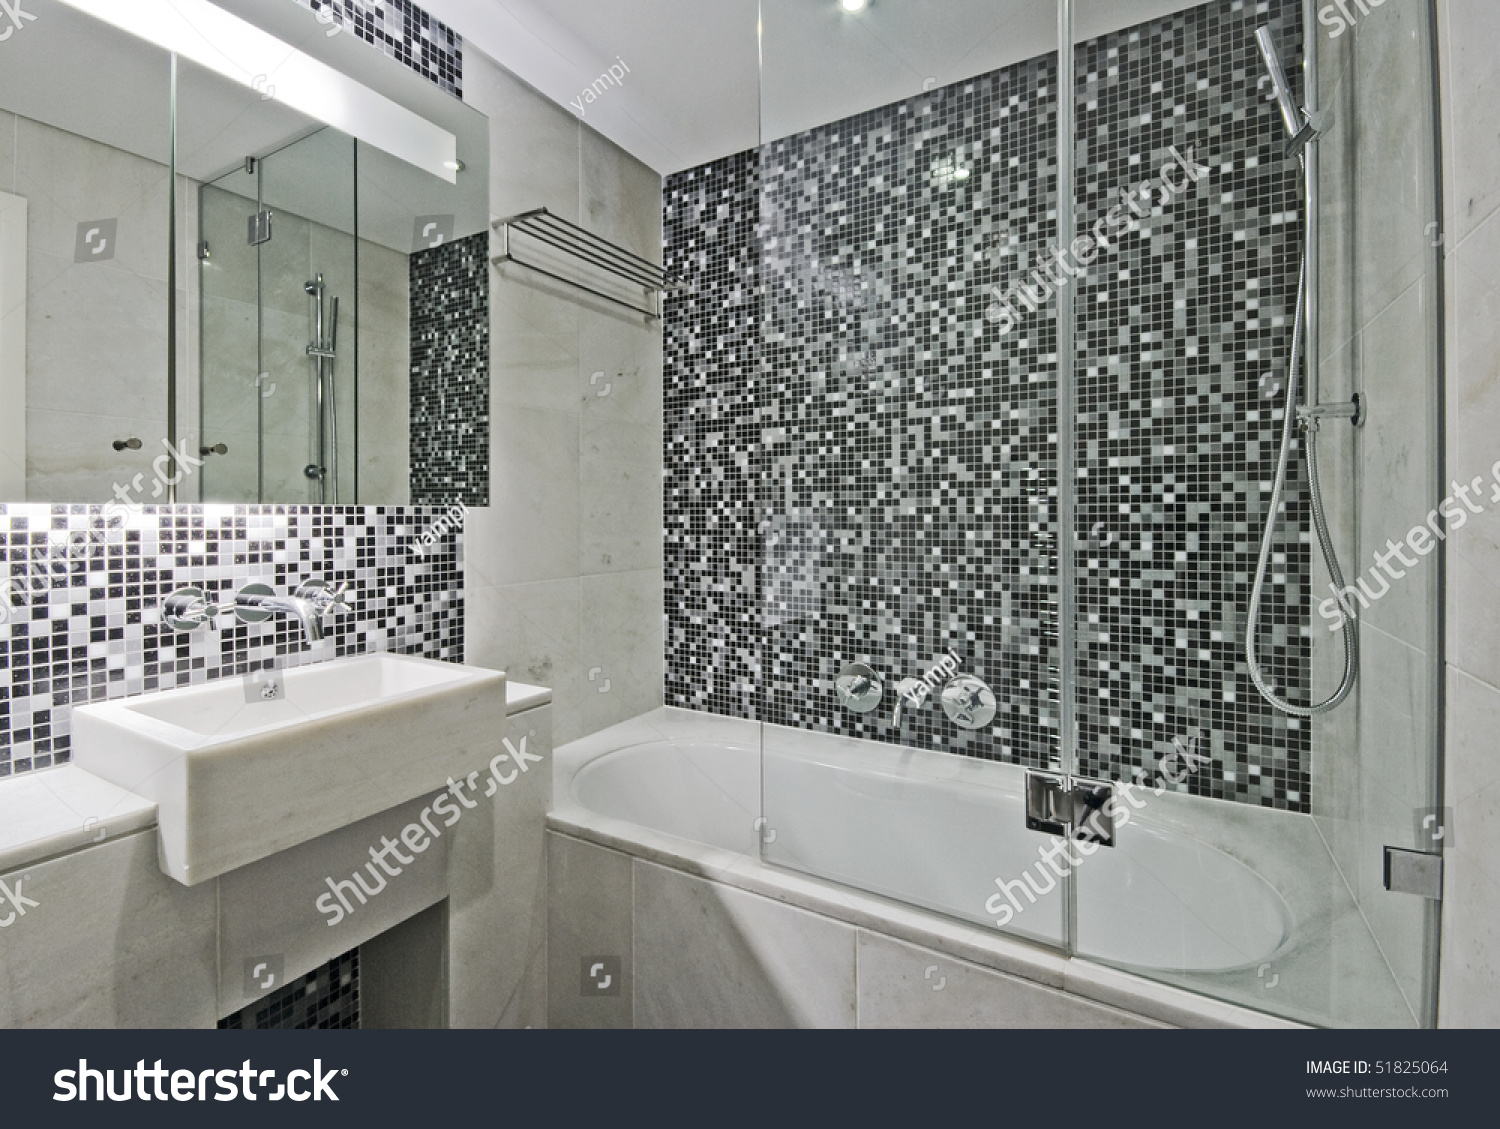 24 Mosaic Bathroom Ideas Designs: Modern Luxury Bathroom Large Bath Tub Stock Photo 51825064